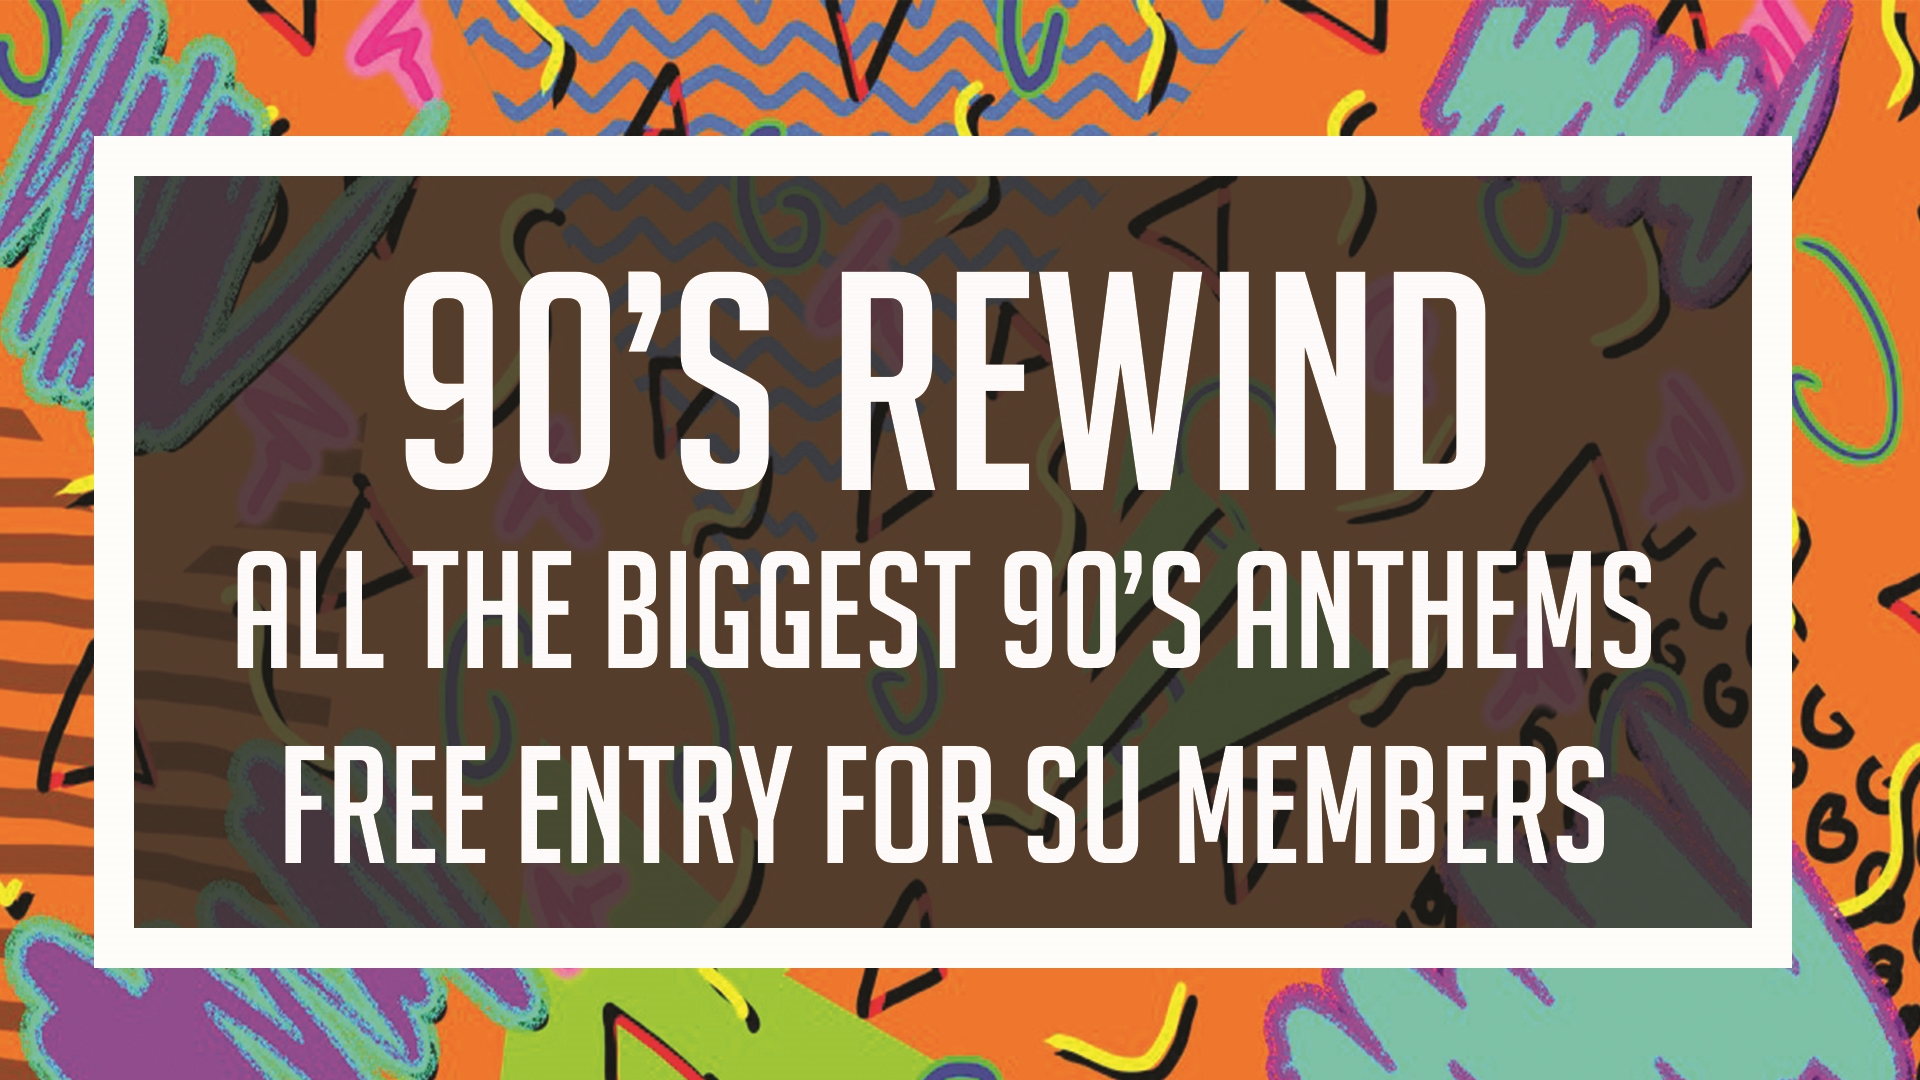 90's Rewind - Free Entry for SU Members